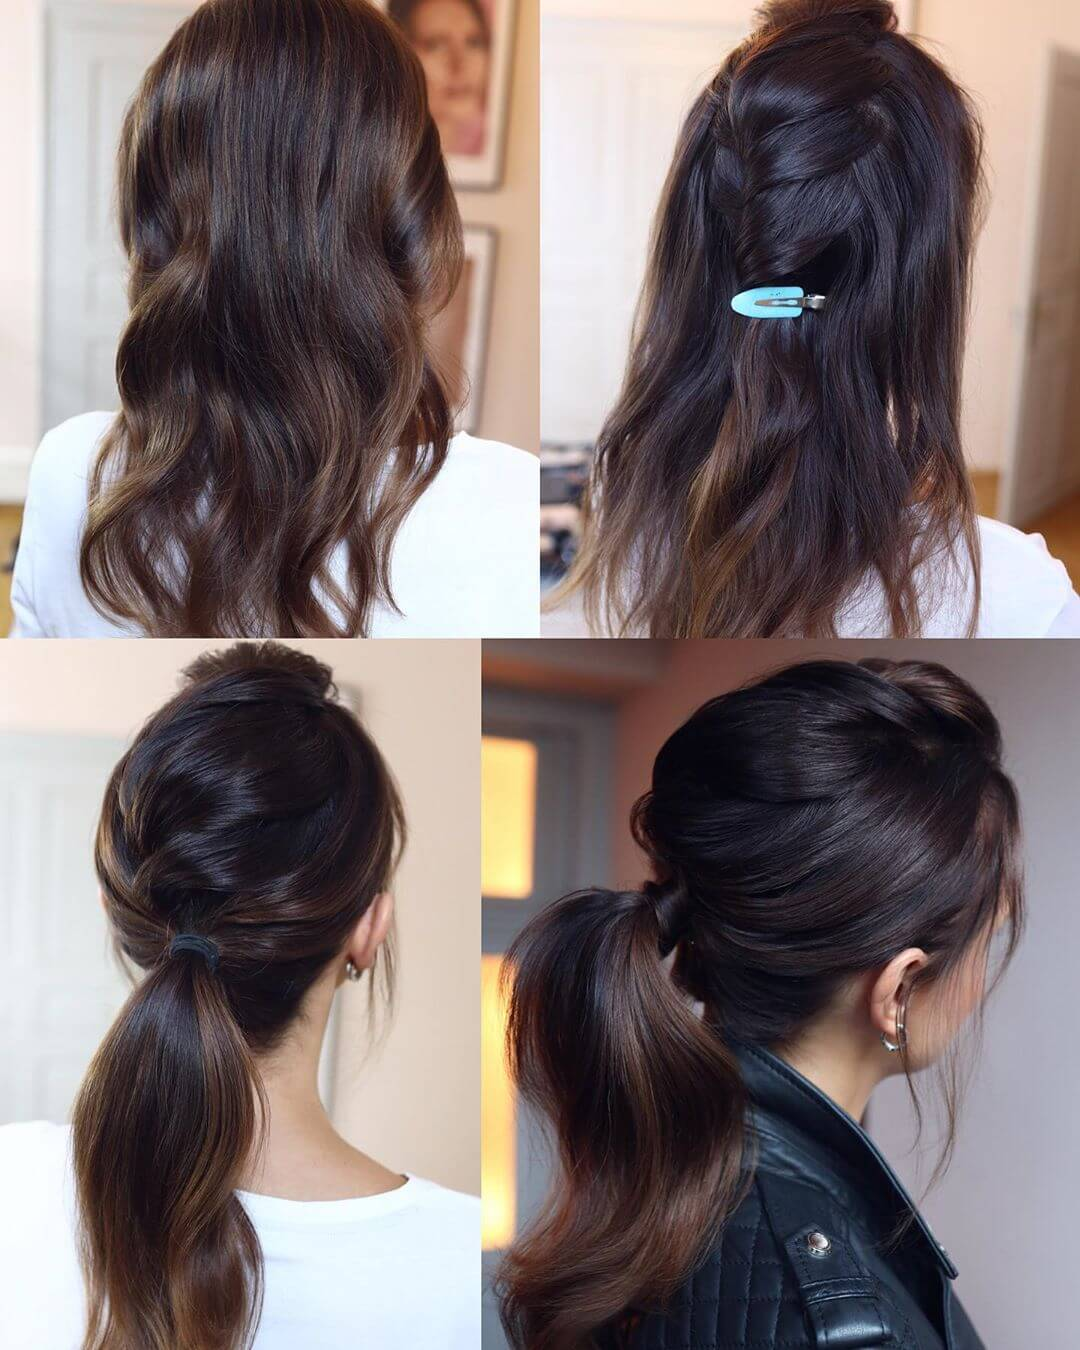 Step by Step Rowdy pony tail Hairstyles for Long, Medium, Short Hair